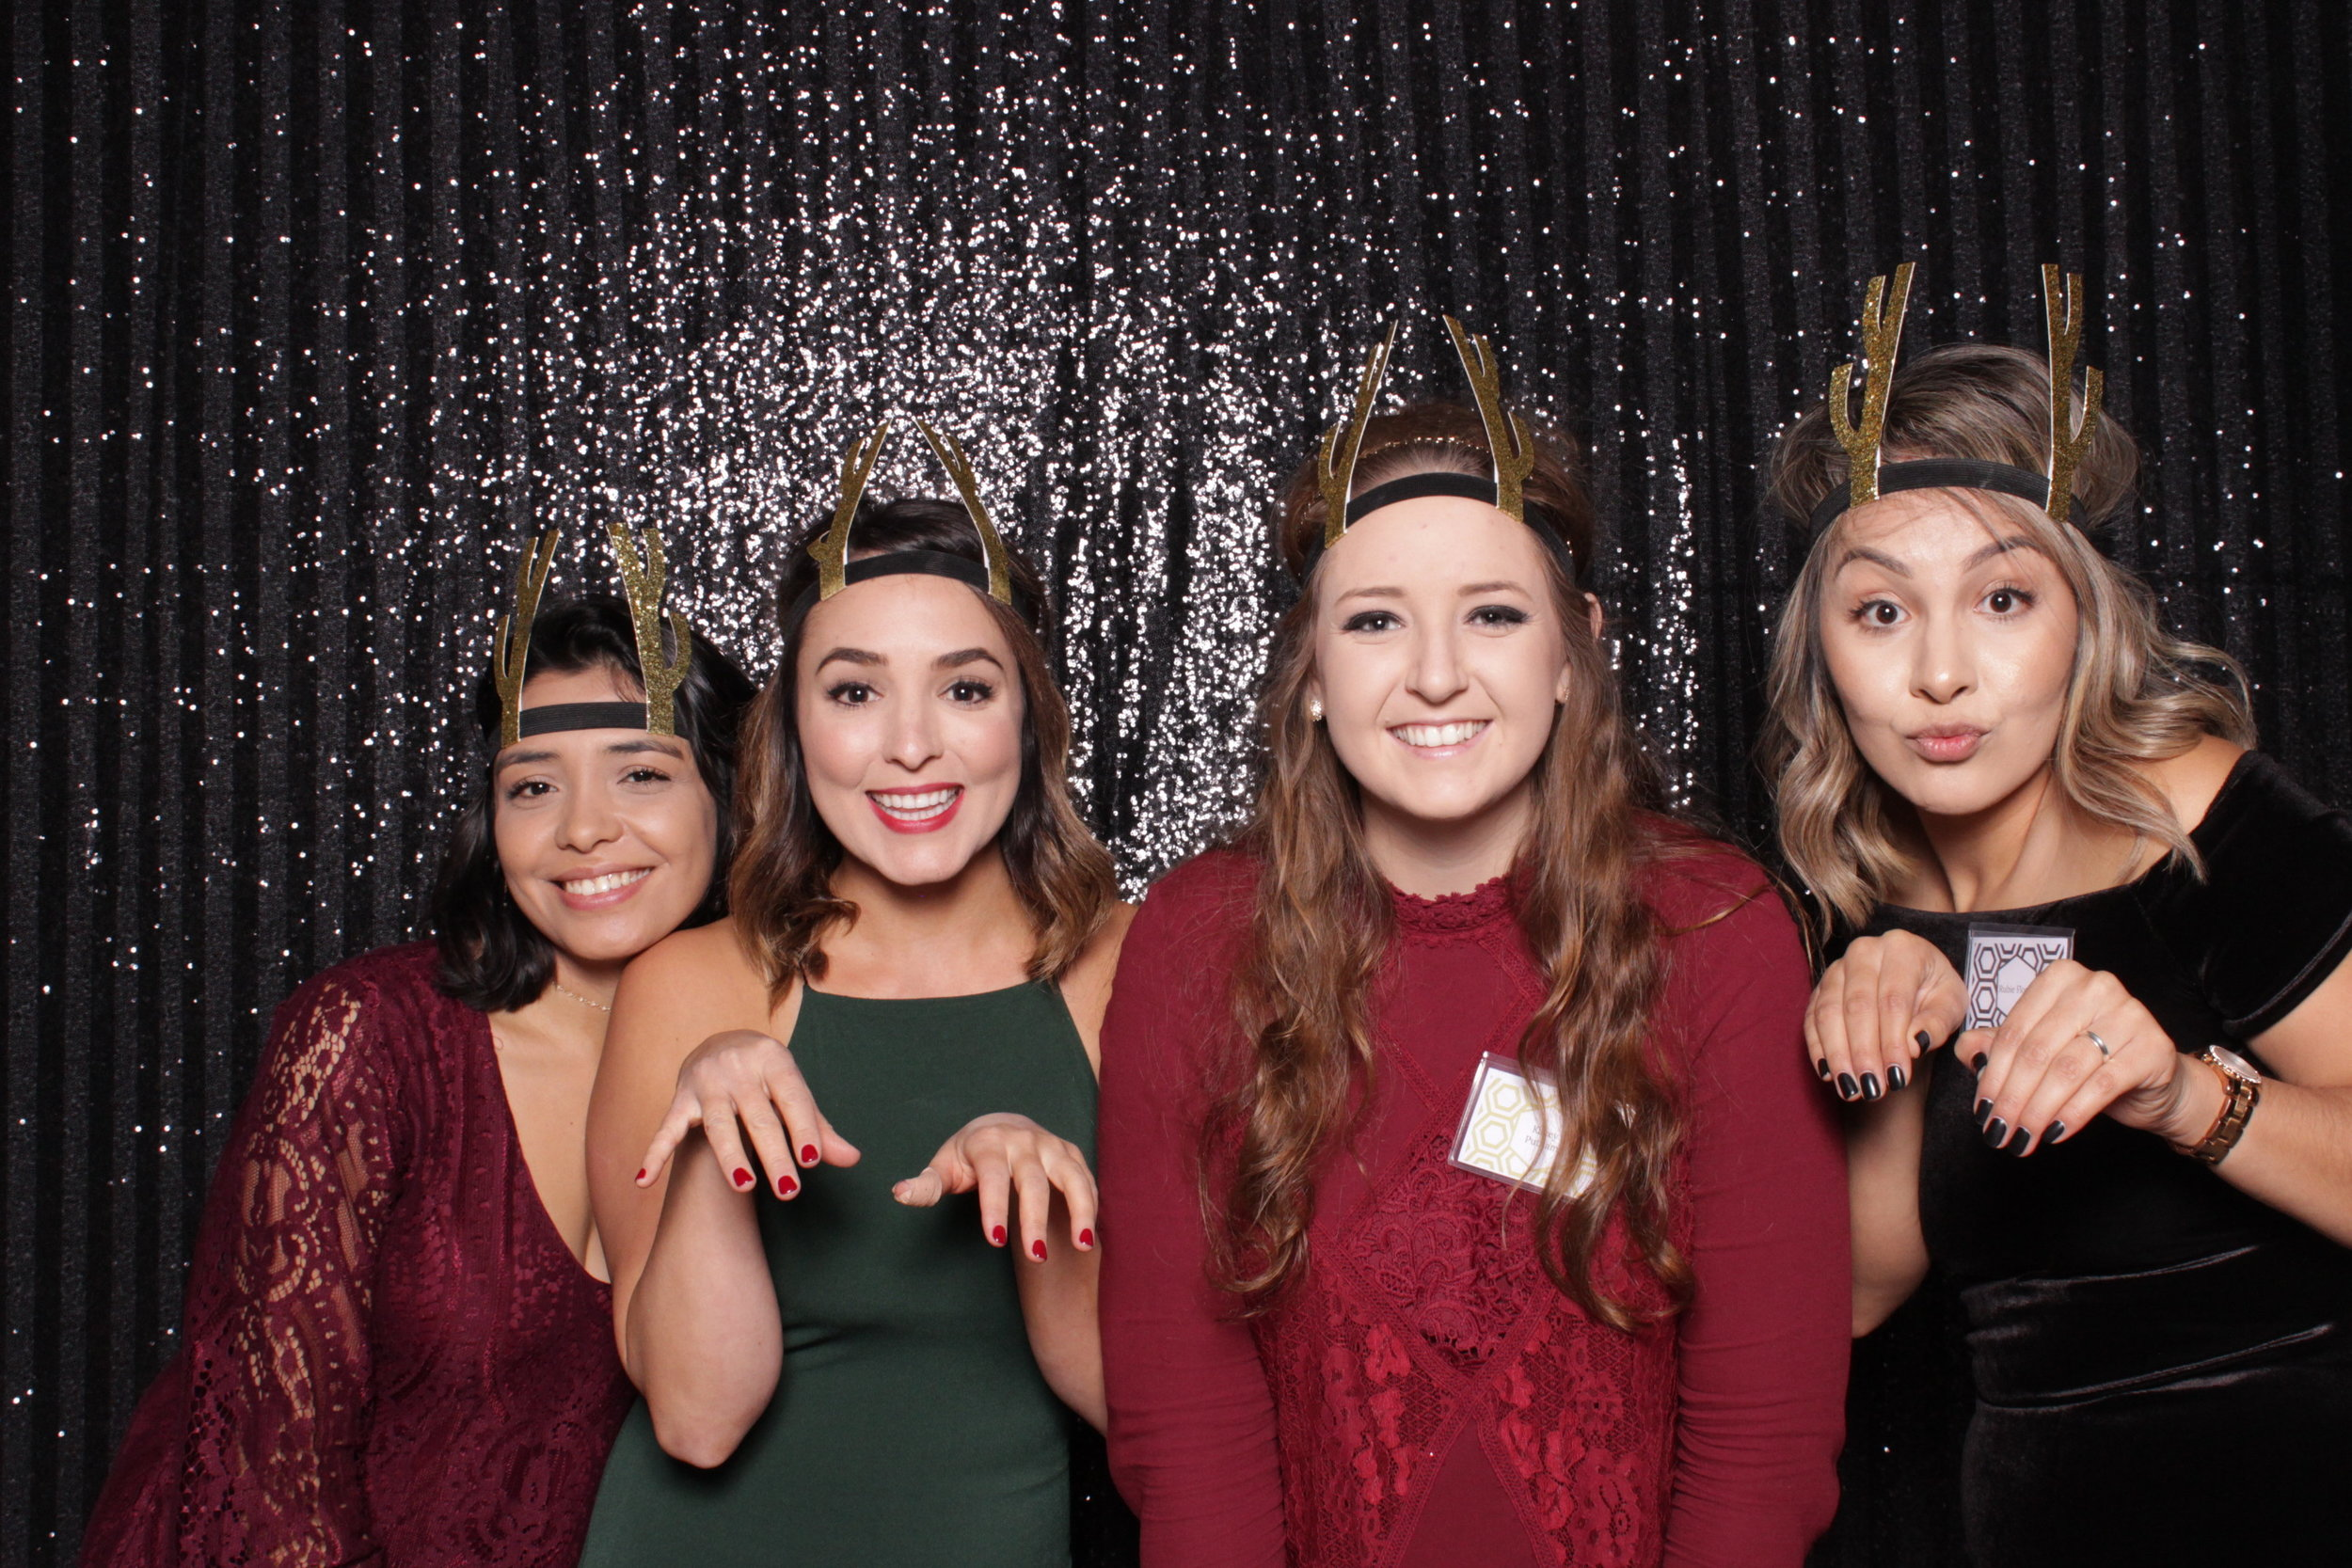 Chico-photo-booth-rental-always-ready